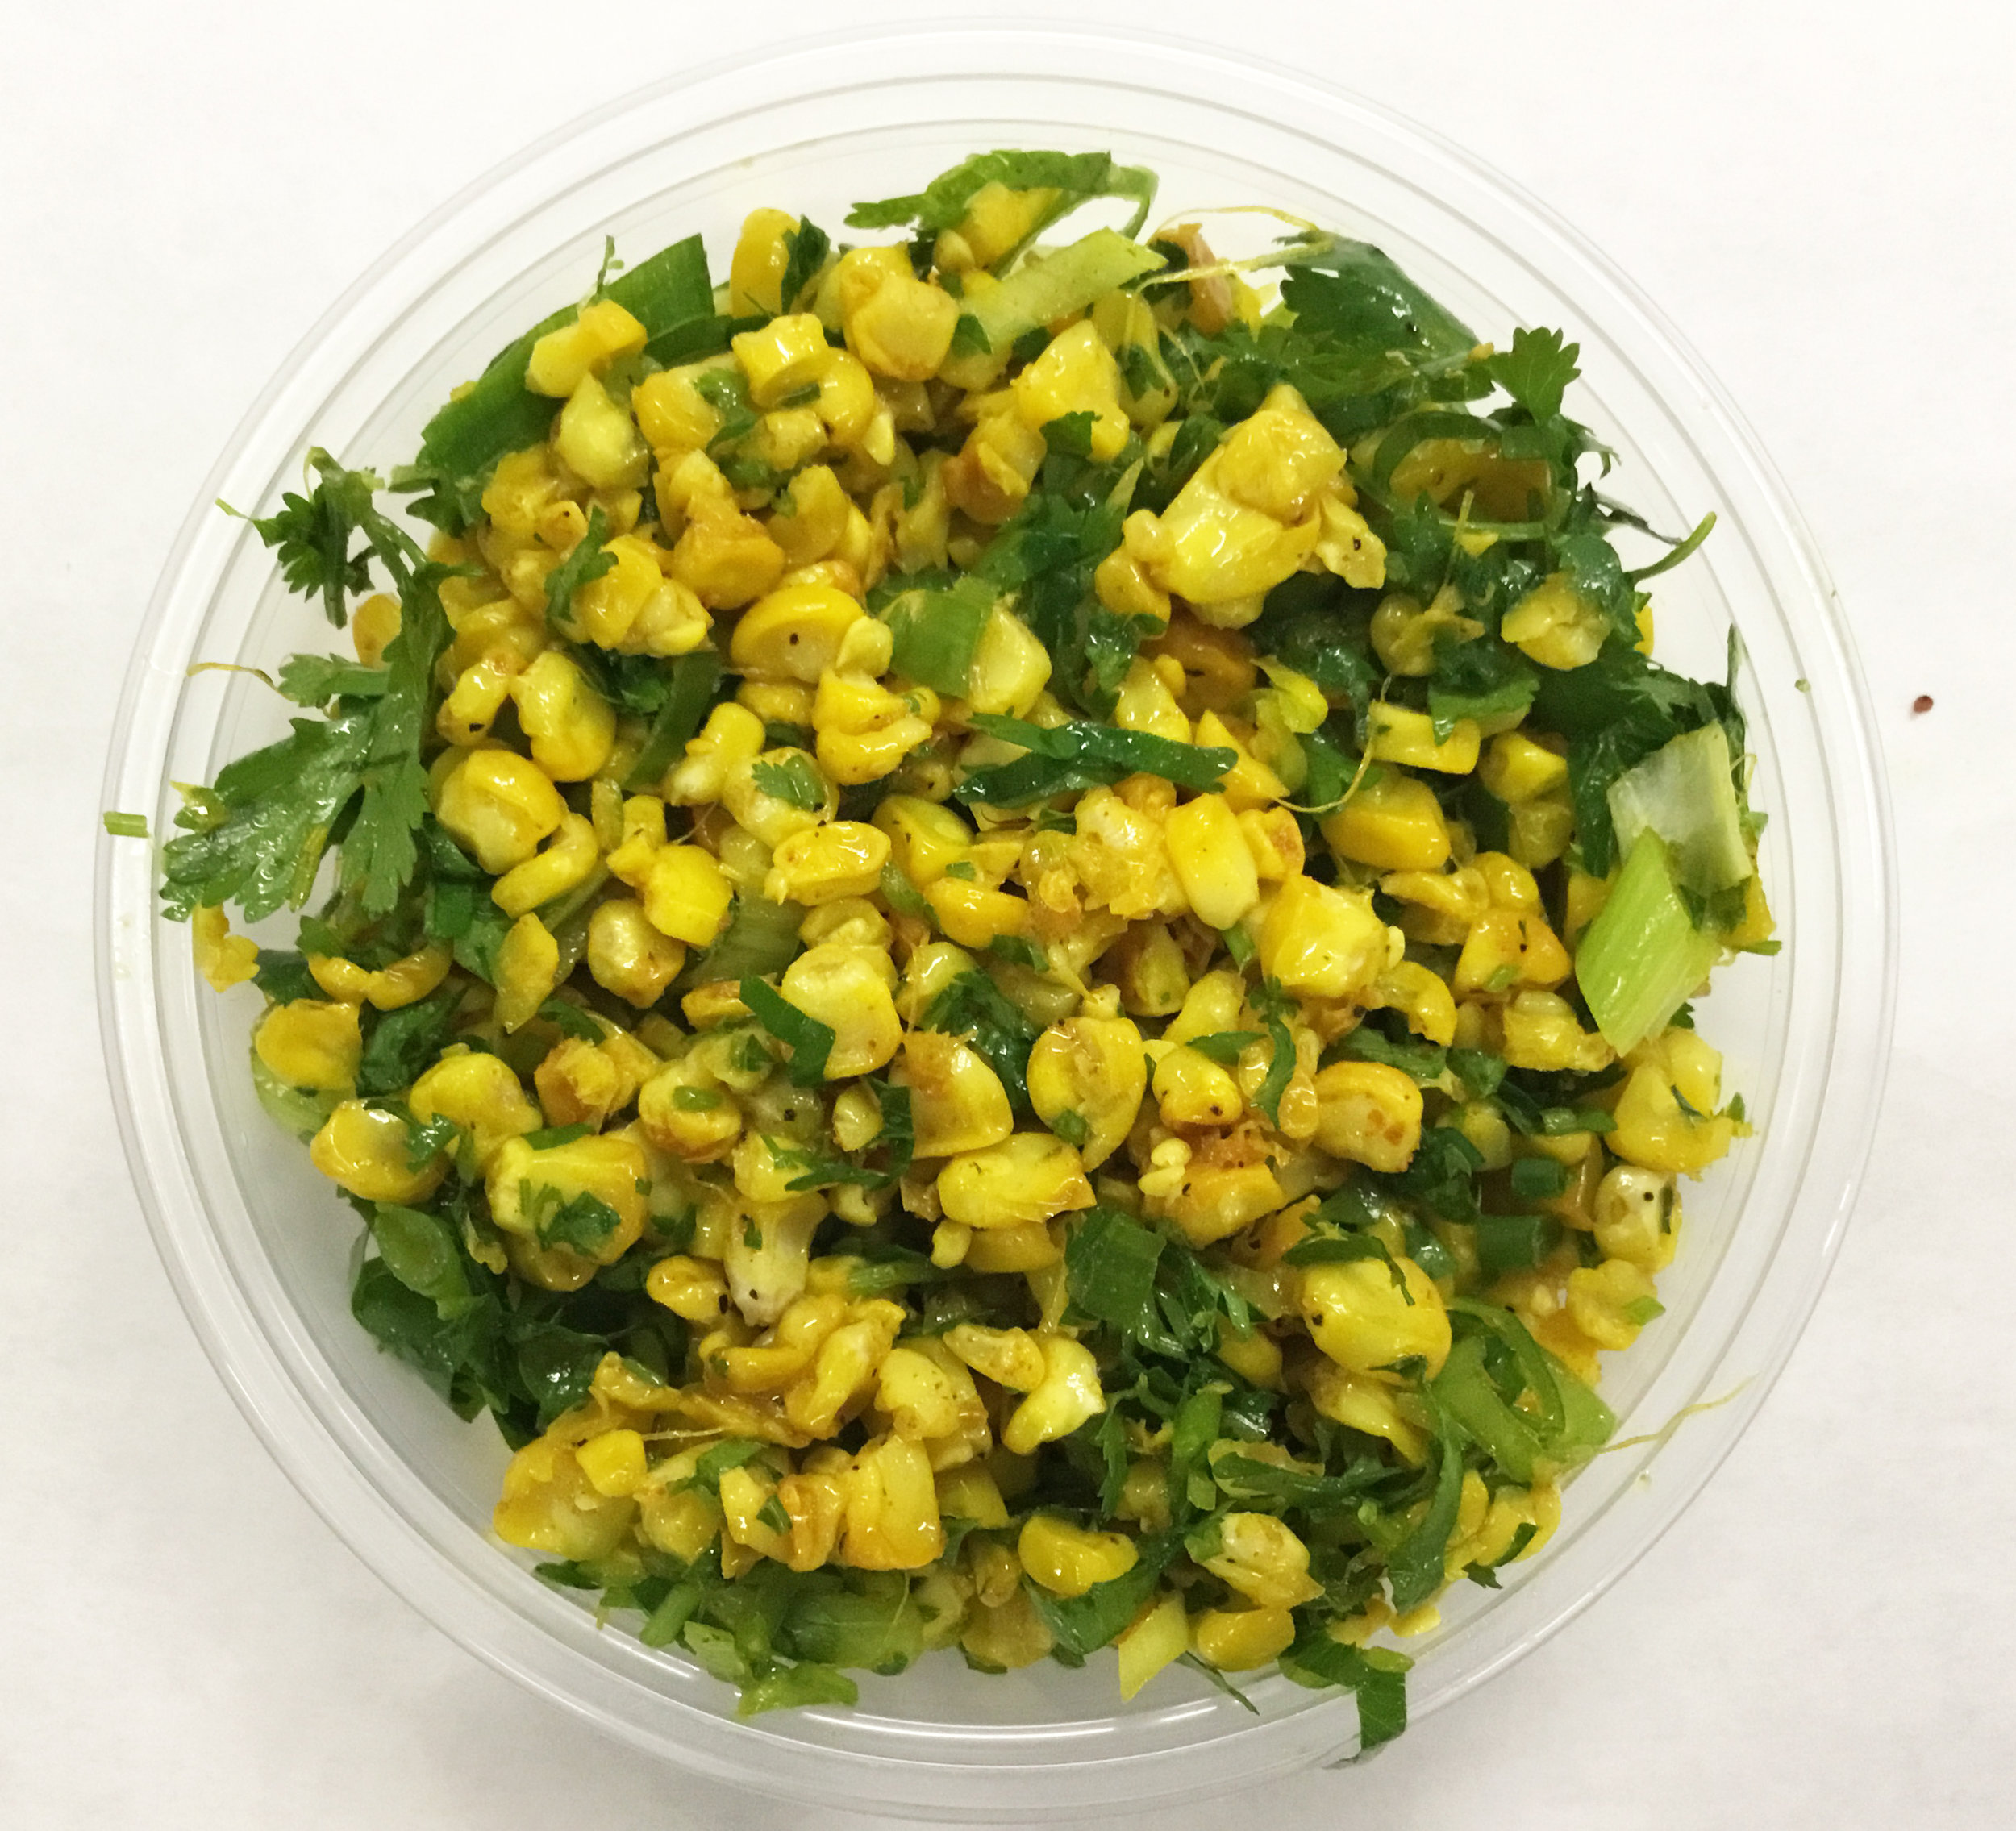 Fresh corn salad with parsley, cilantro, scallions and curry.